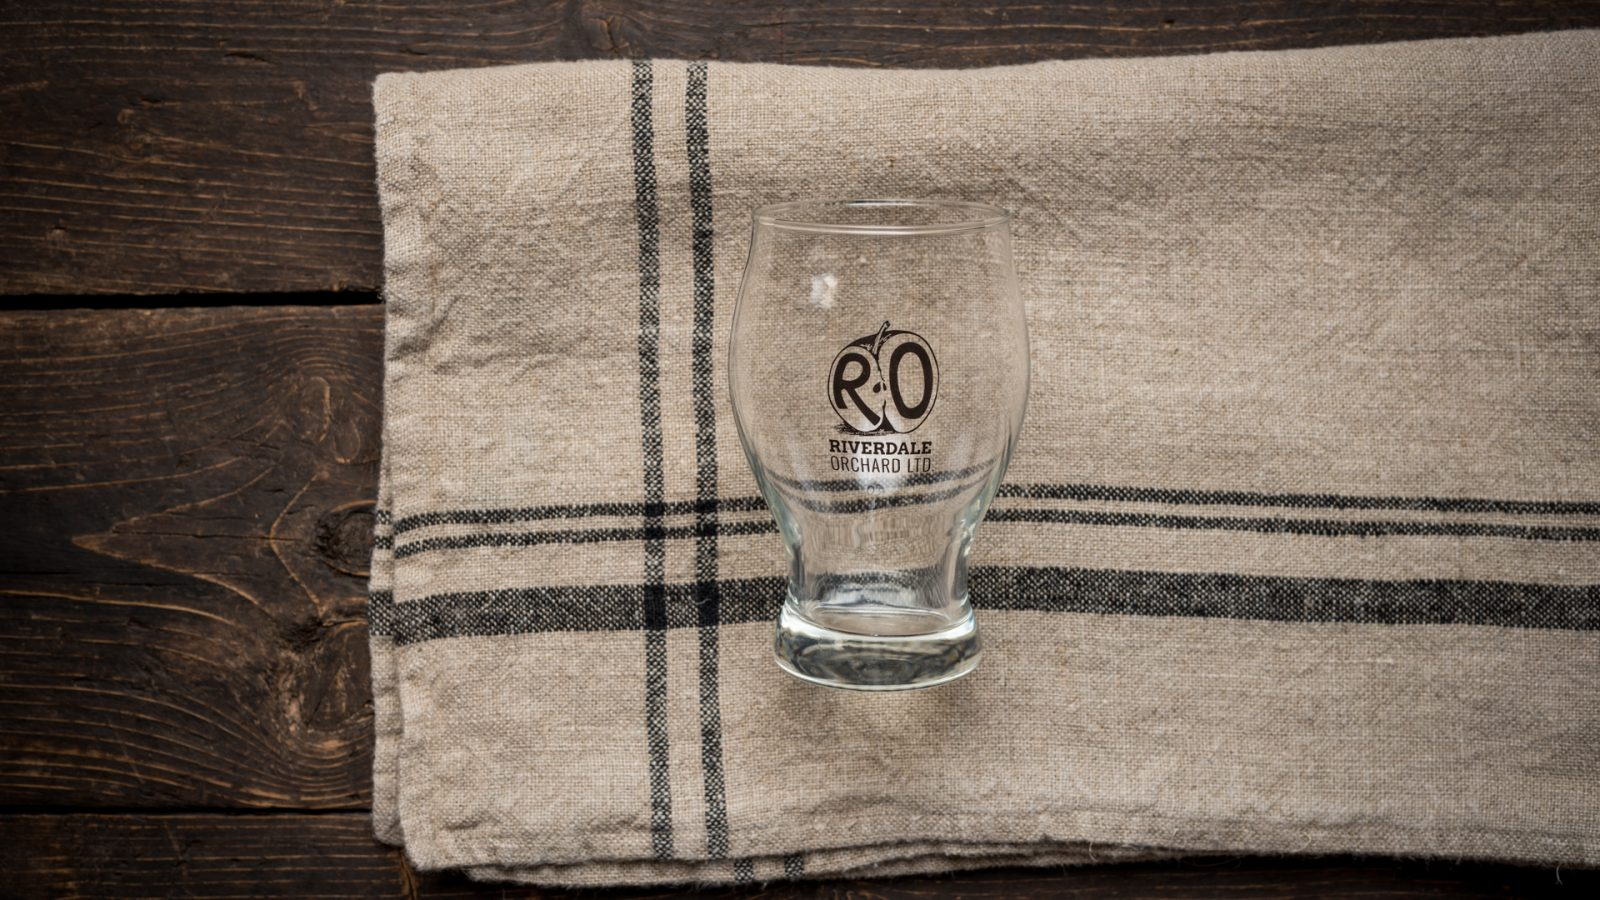 Riverdale Orchard Glass